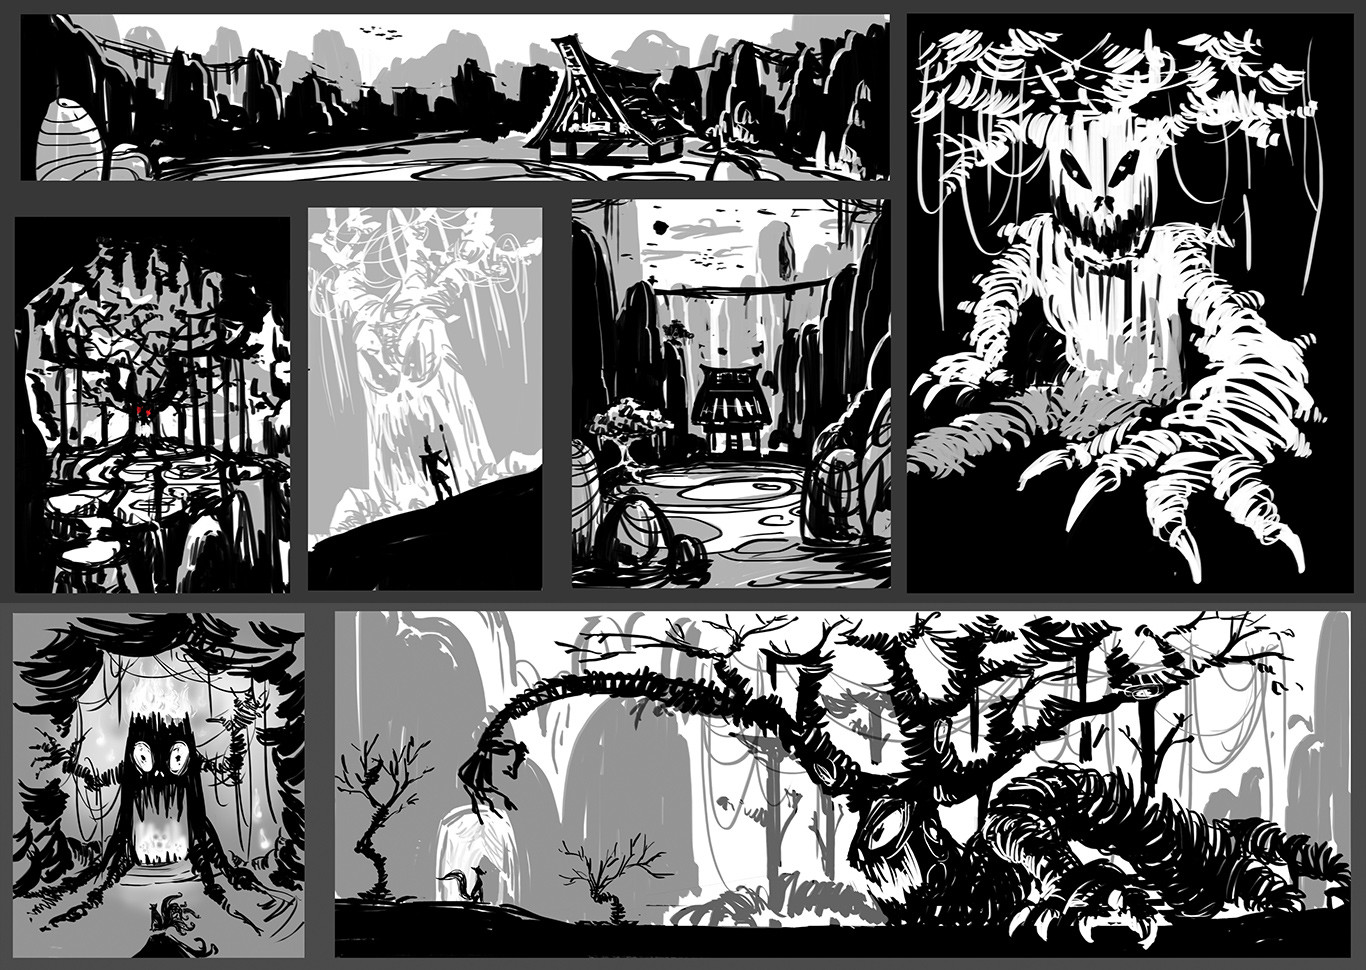 Initial sketches design of the overall background and the tree monster